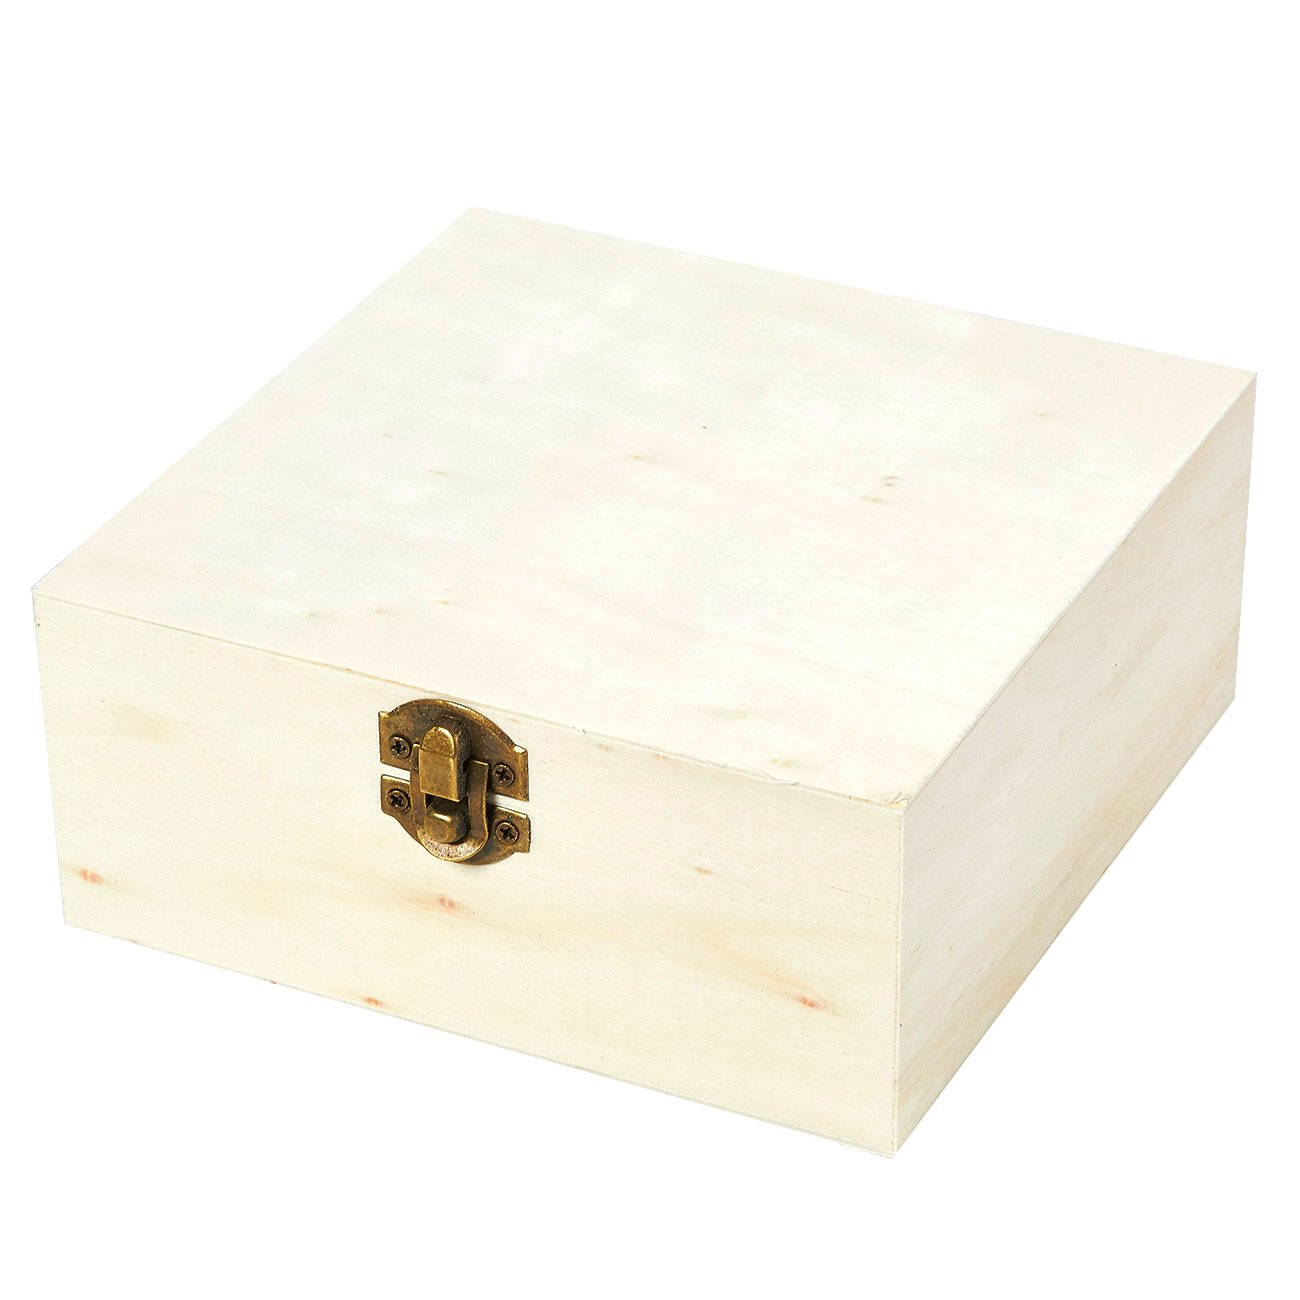 Juvale Wooden Boxes - 5-Piece Hinged-Lid Nesting Boxes Arts, Crafts, Hobbies Home Storage, Unfinished Wood, Natural Wood Color by Juvale (Image #4)